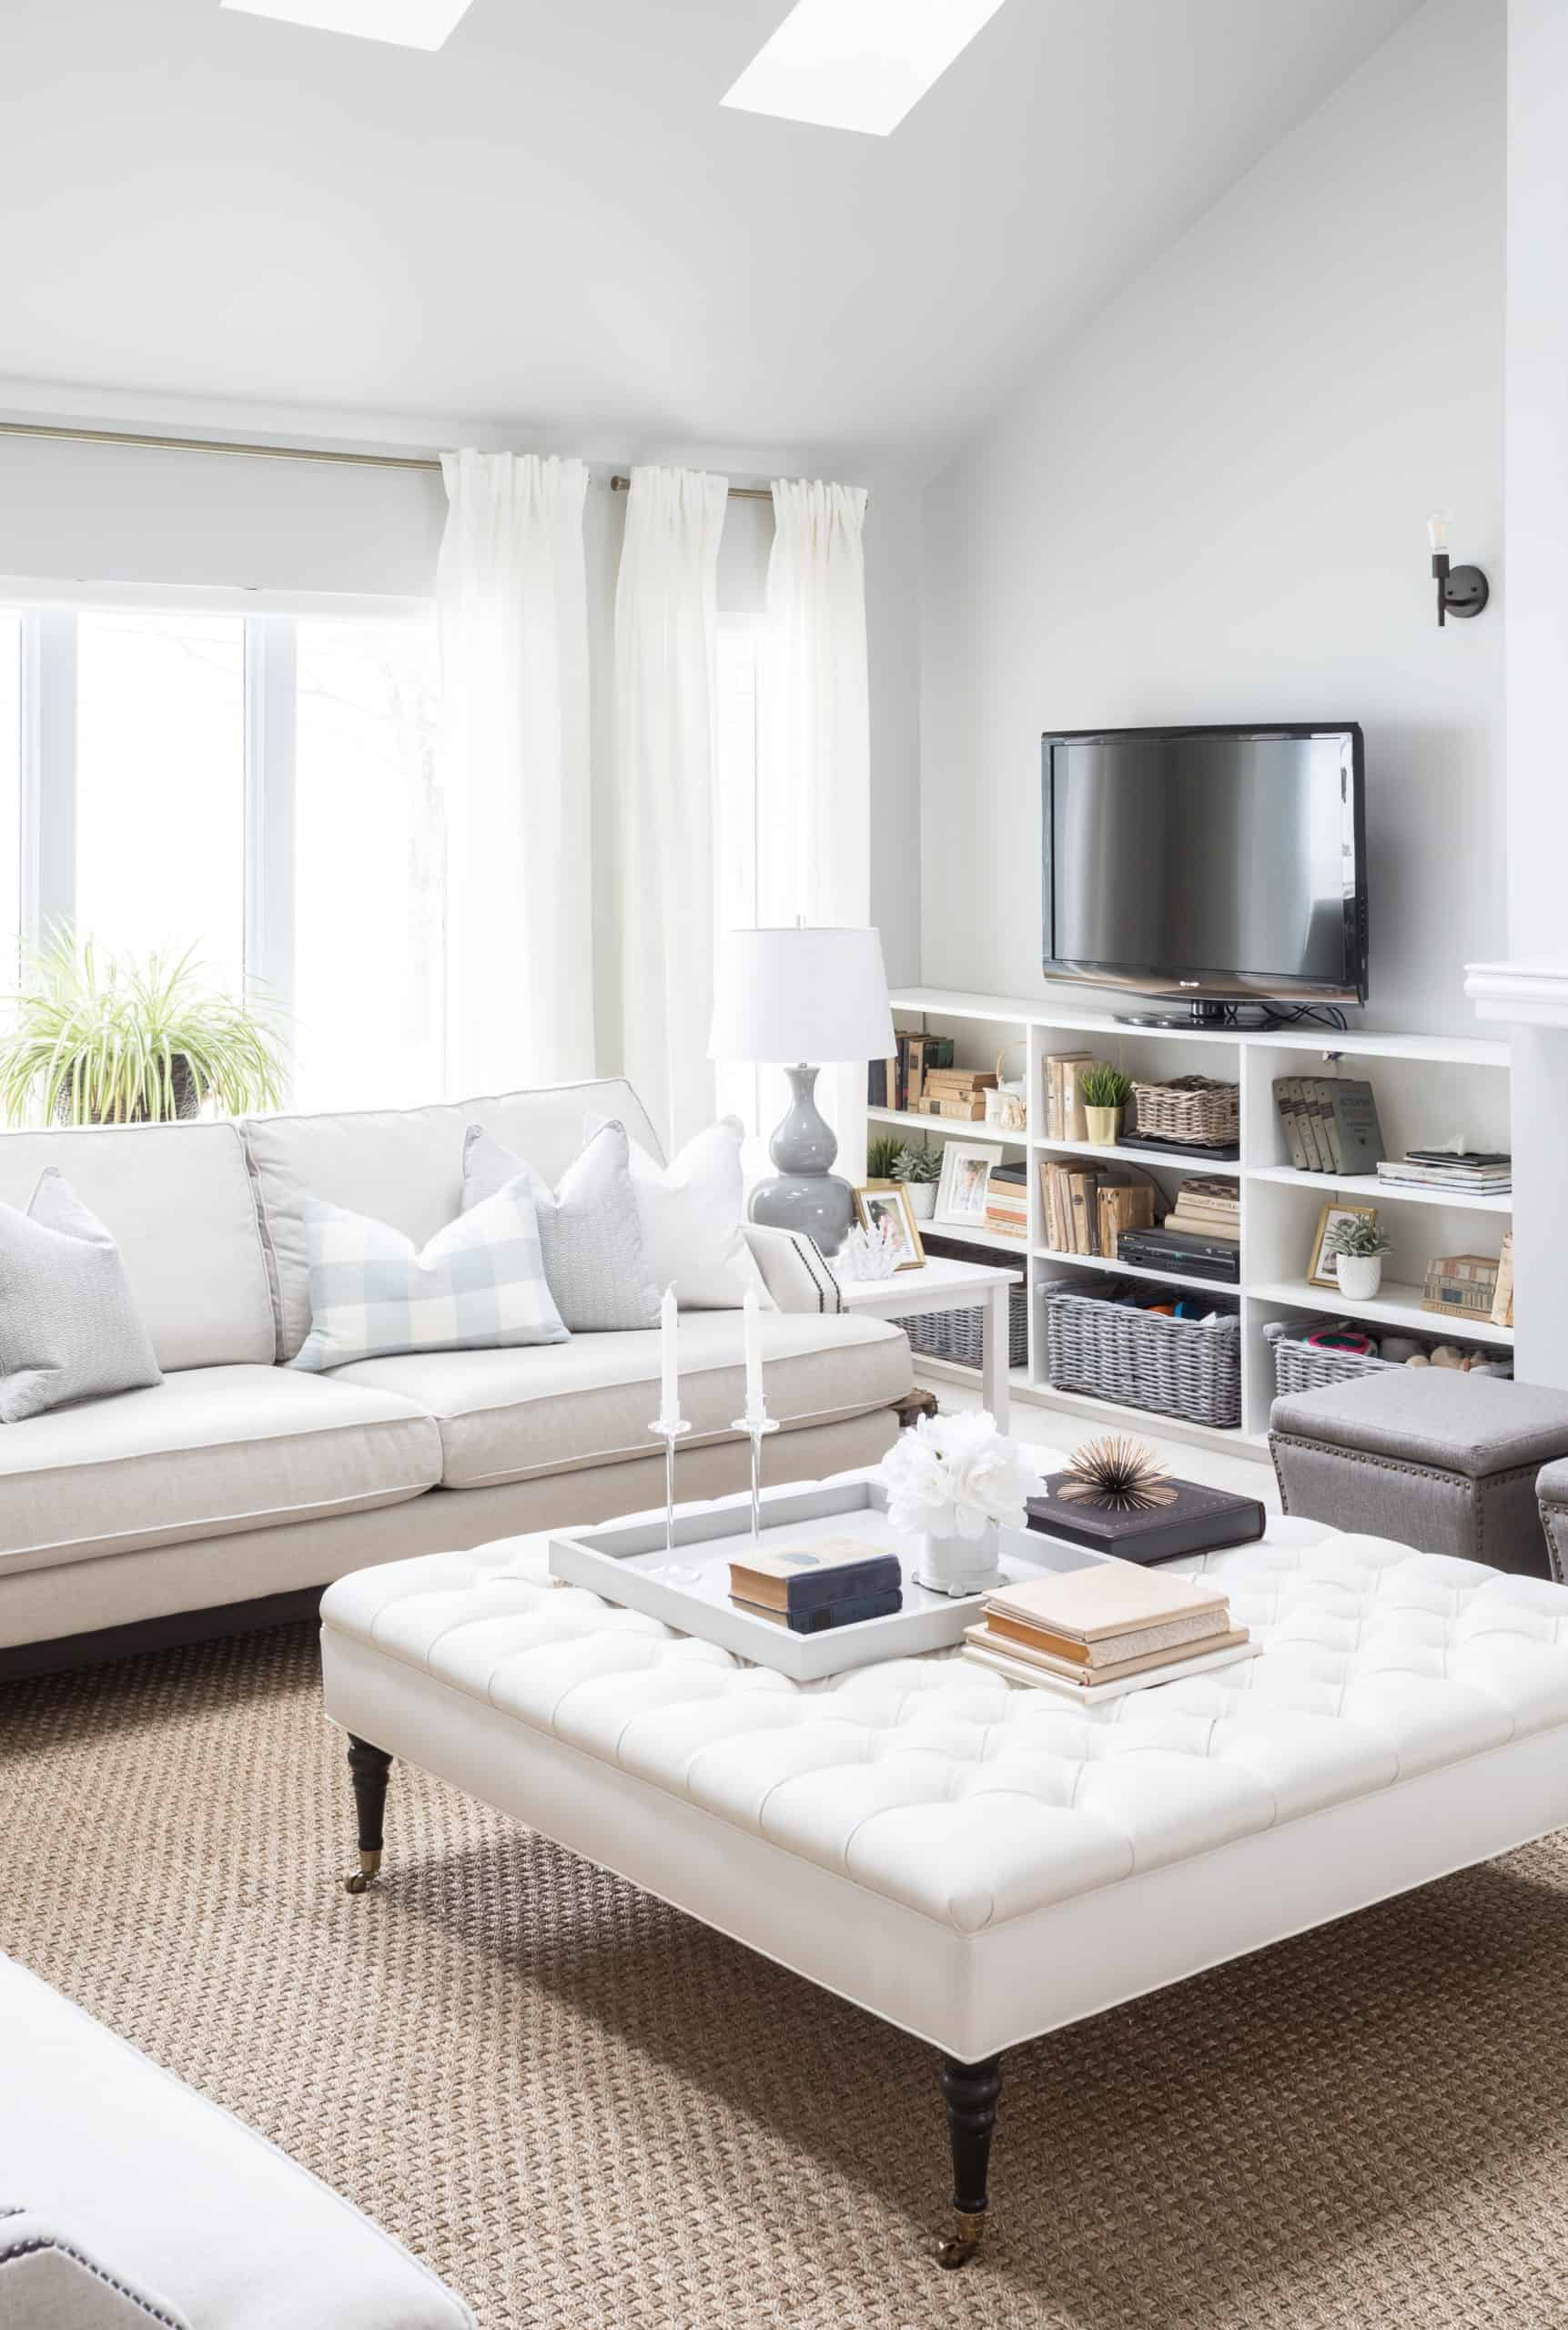 Large, bright white ottoman inside a modern living room